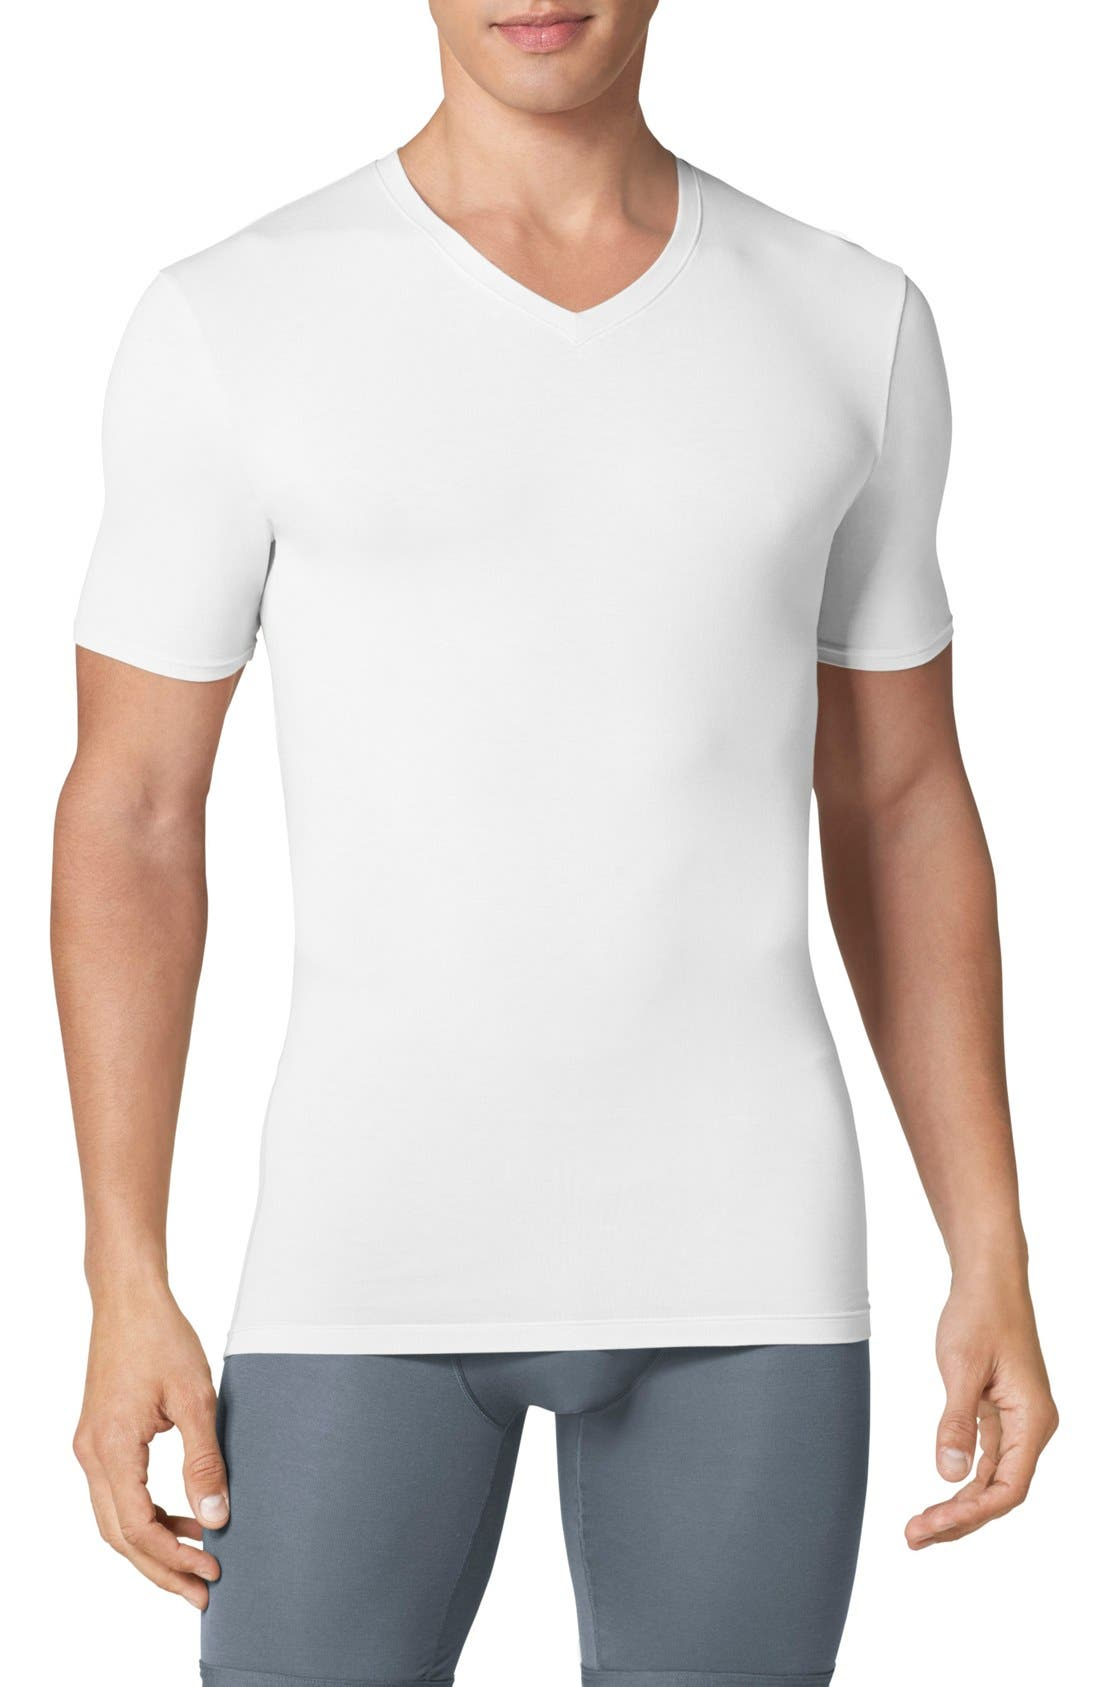 Tommy John 'Cool Cotton' High V-Neck Undershirt